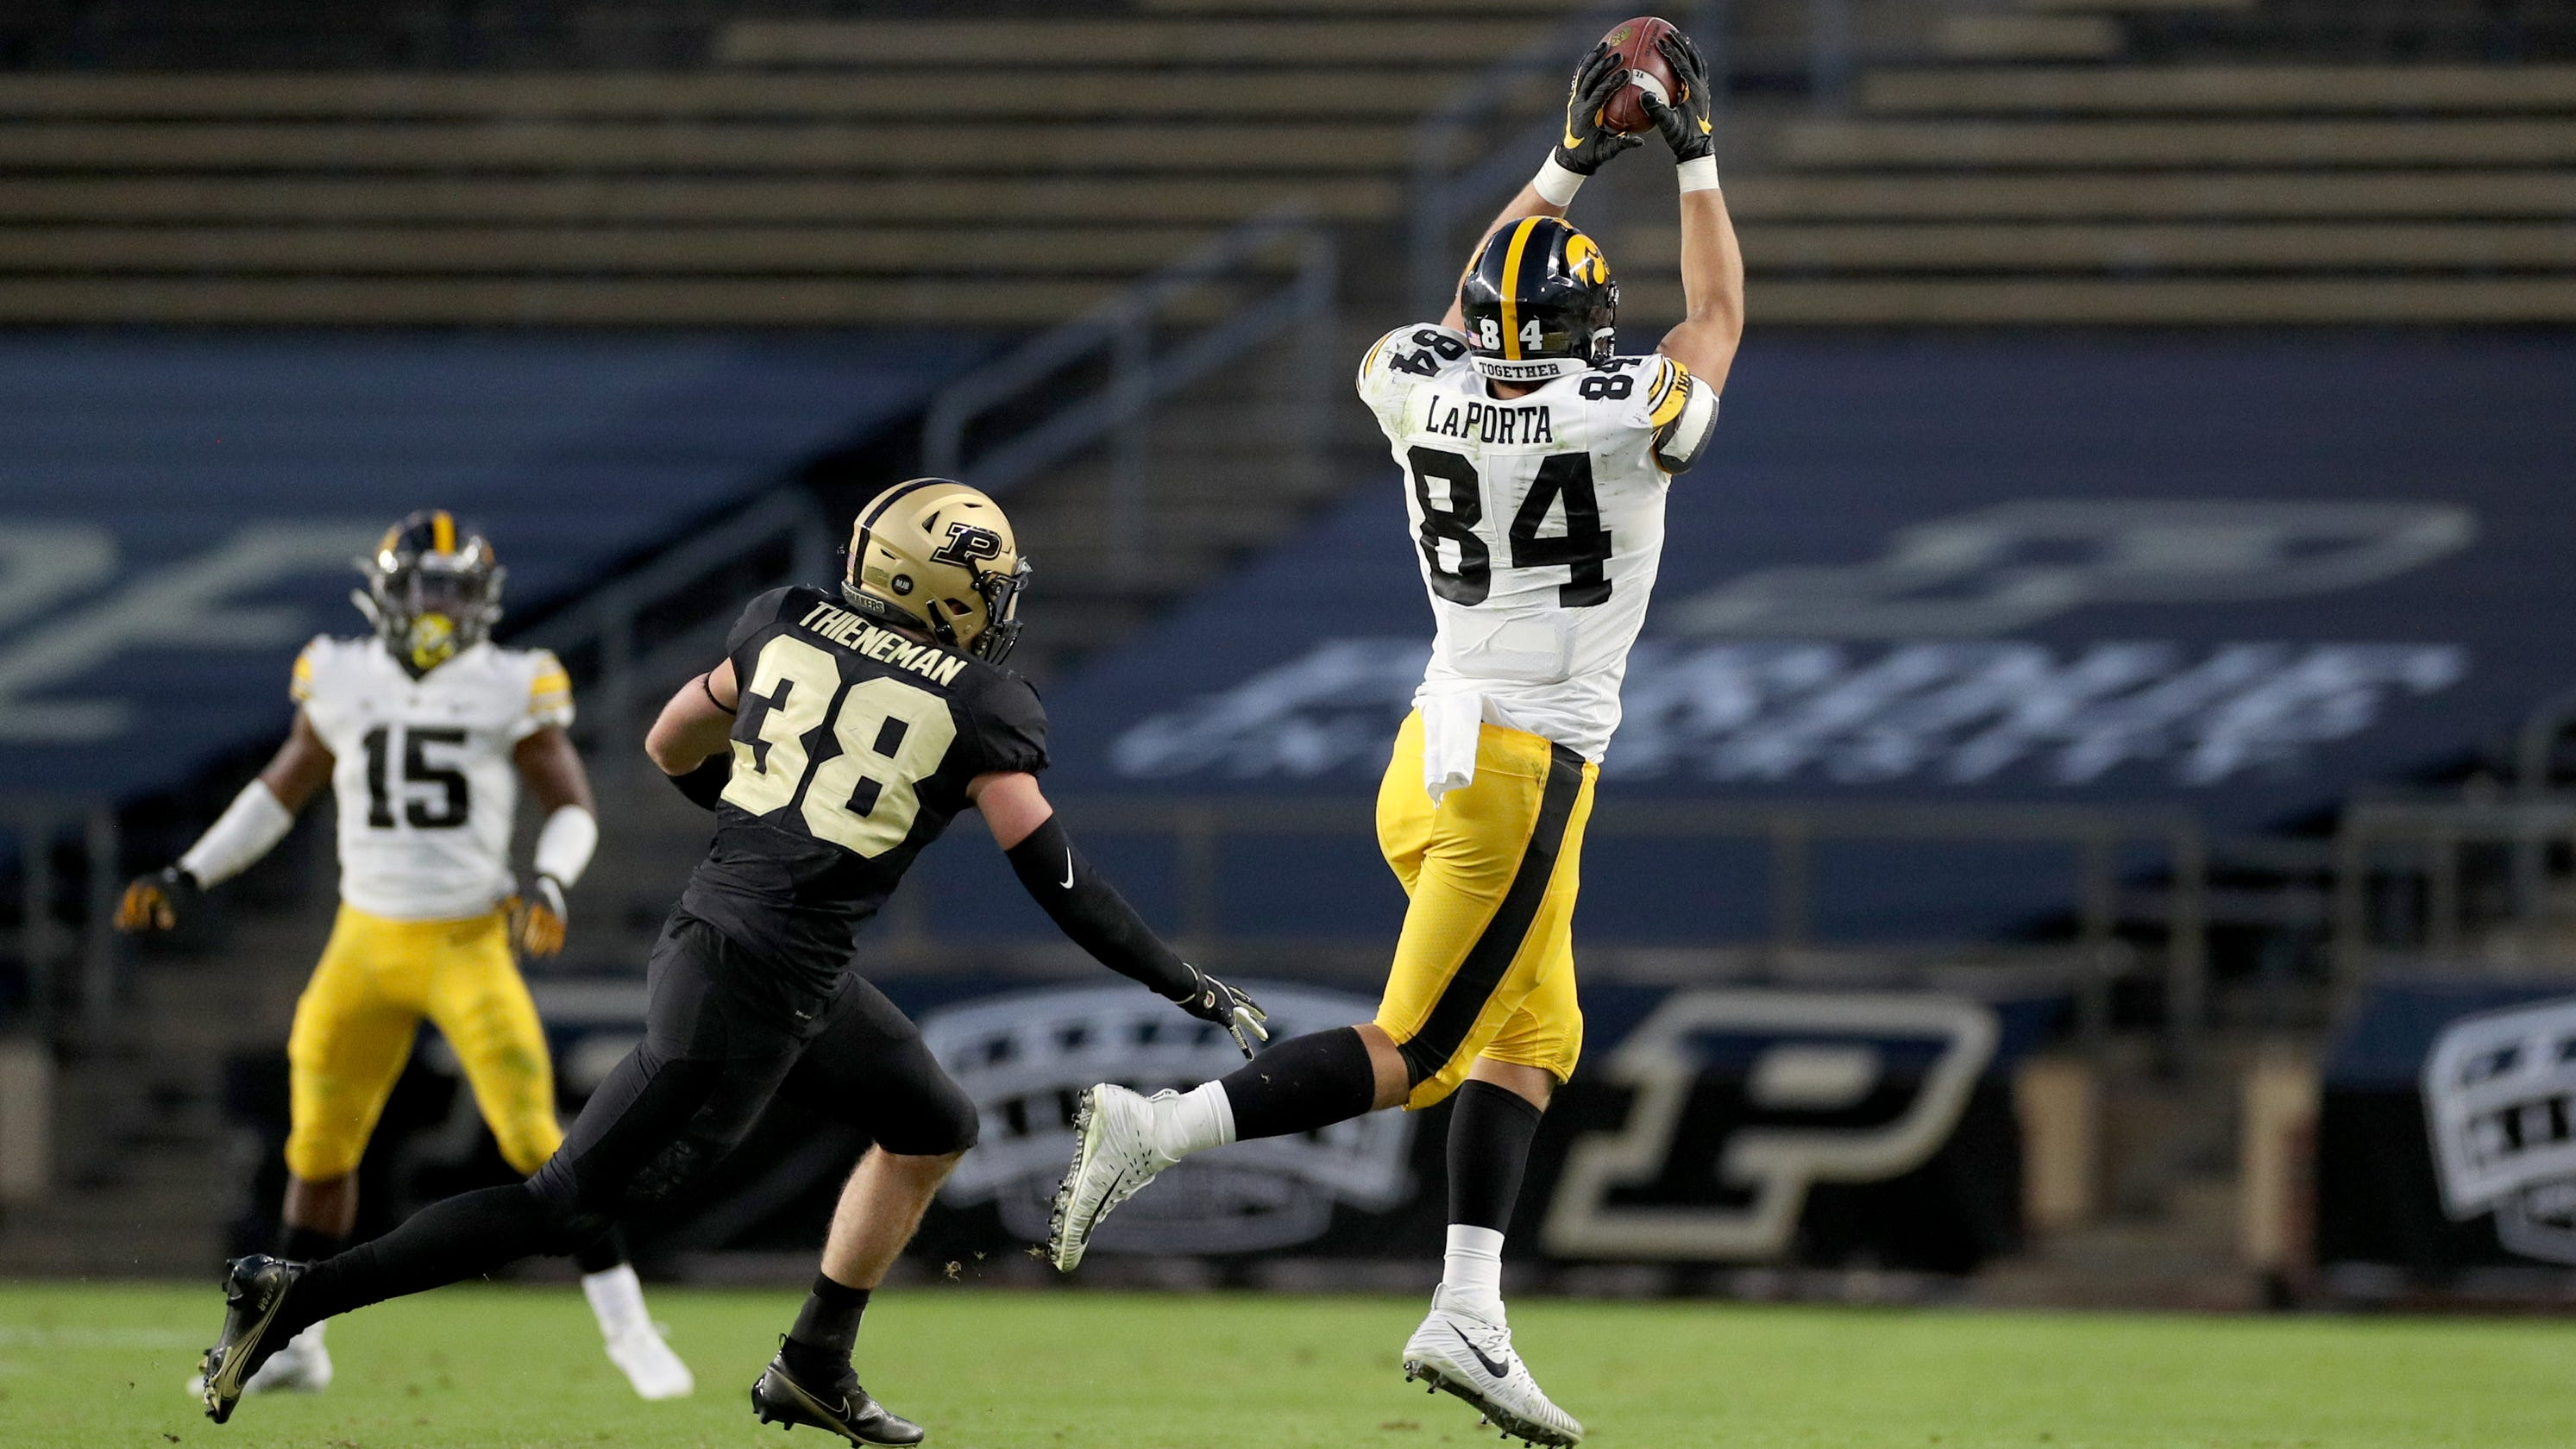 Tracing Sam LaPorta's path from small-town sensation to budding star tight end at Iowa